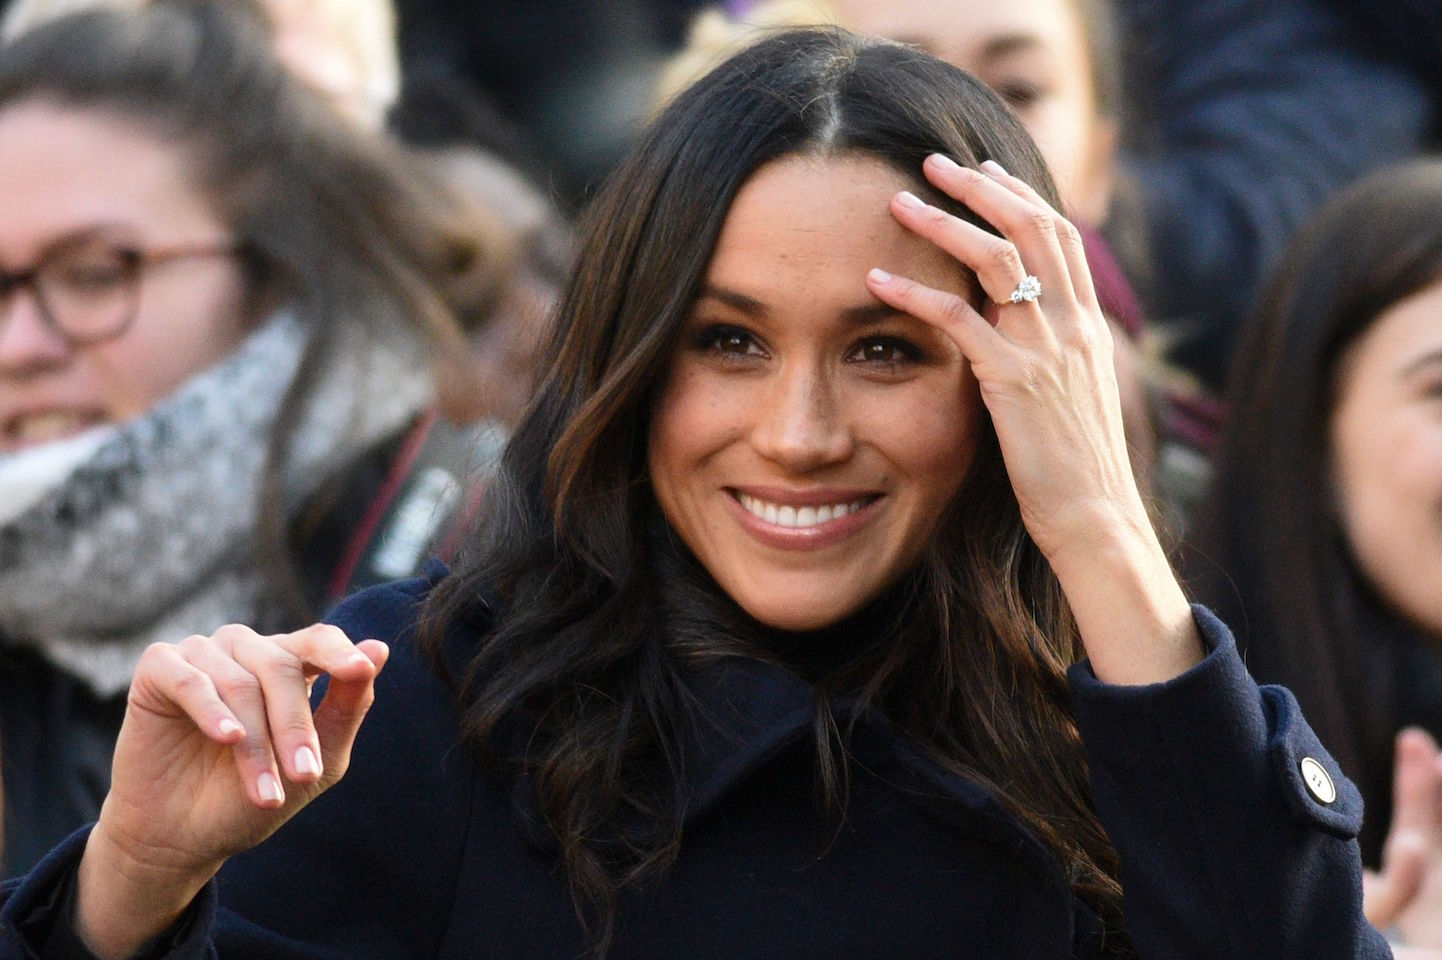 Meghan Markle, The Queen and Kate Middleton Nail polish: They all wear Essie Ballet Slippers